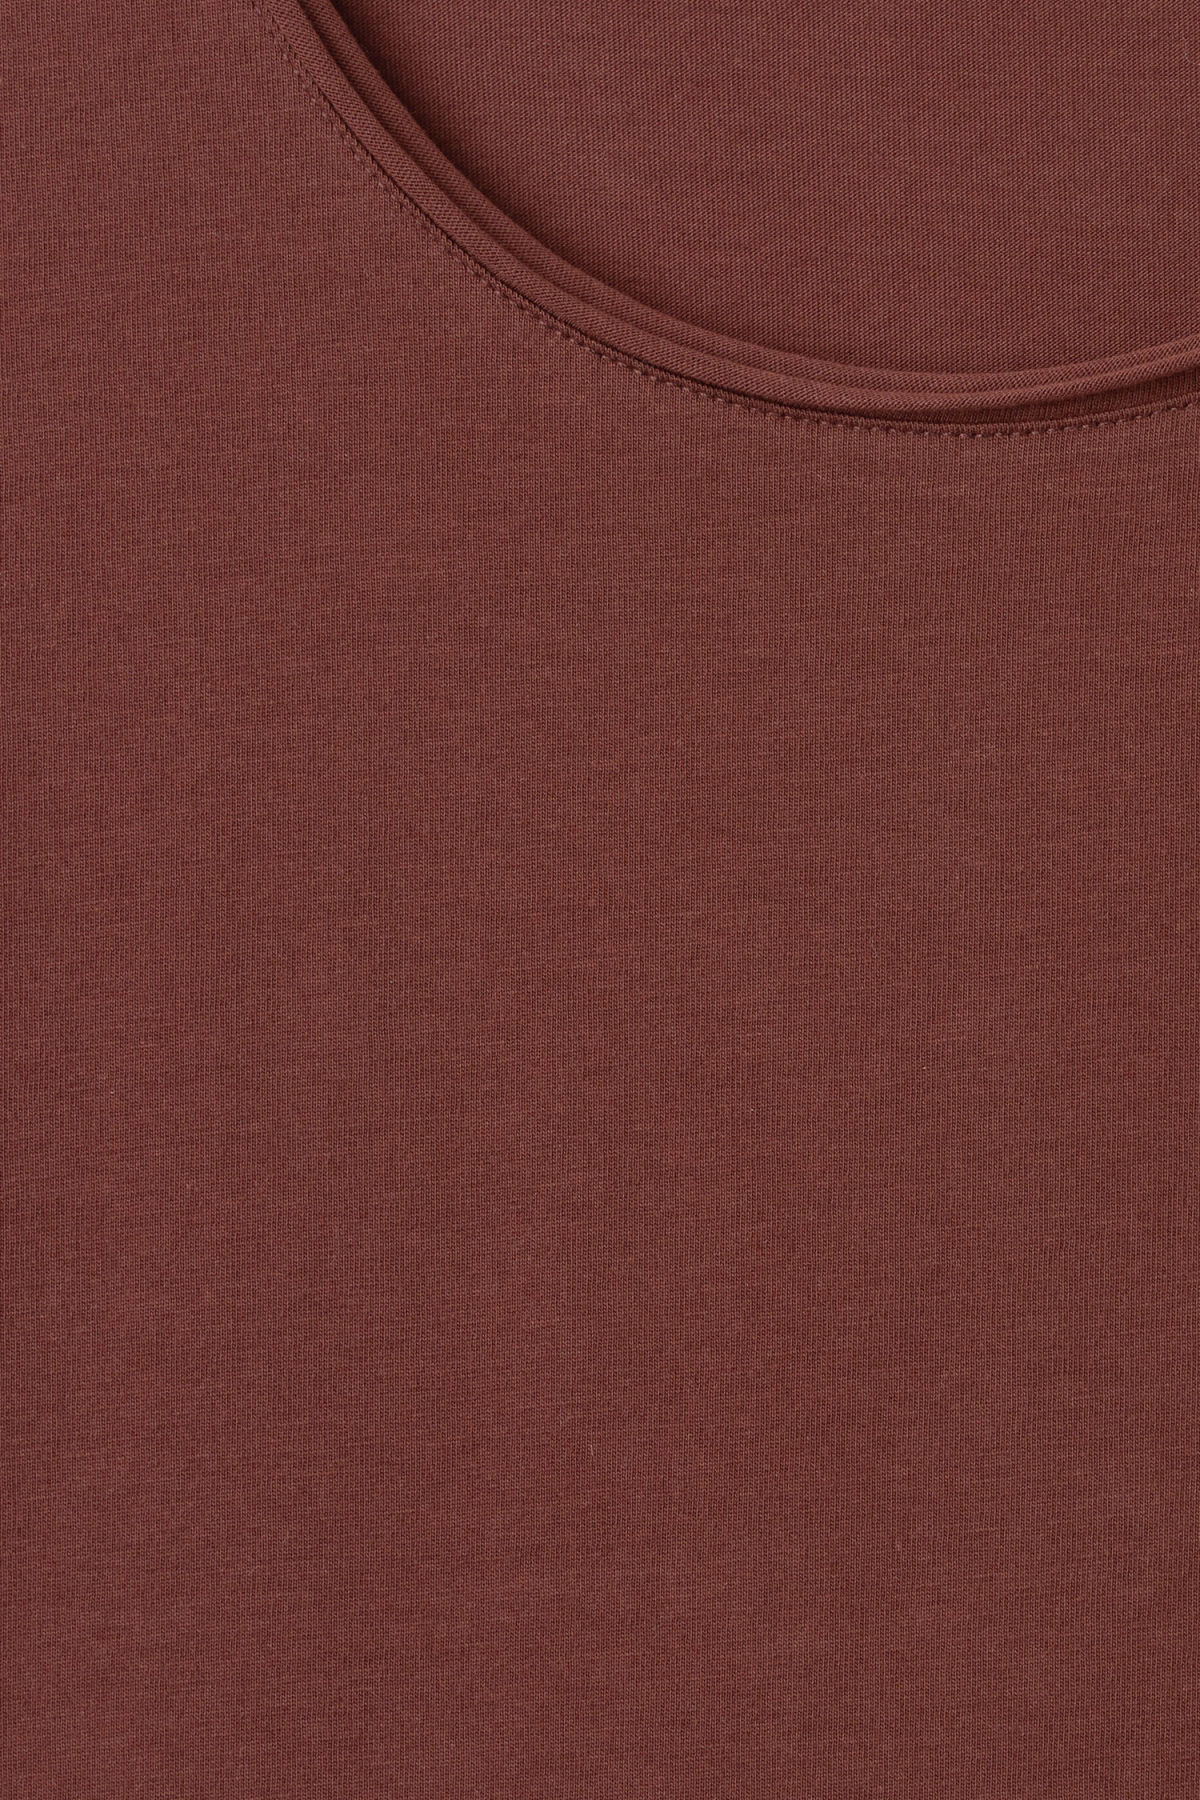 Detailed image of Weekday dark t-shirt in brown